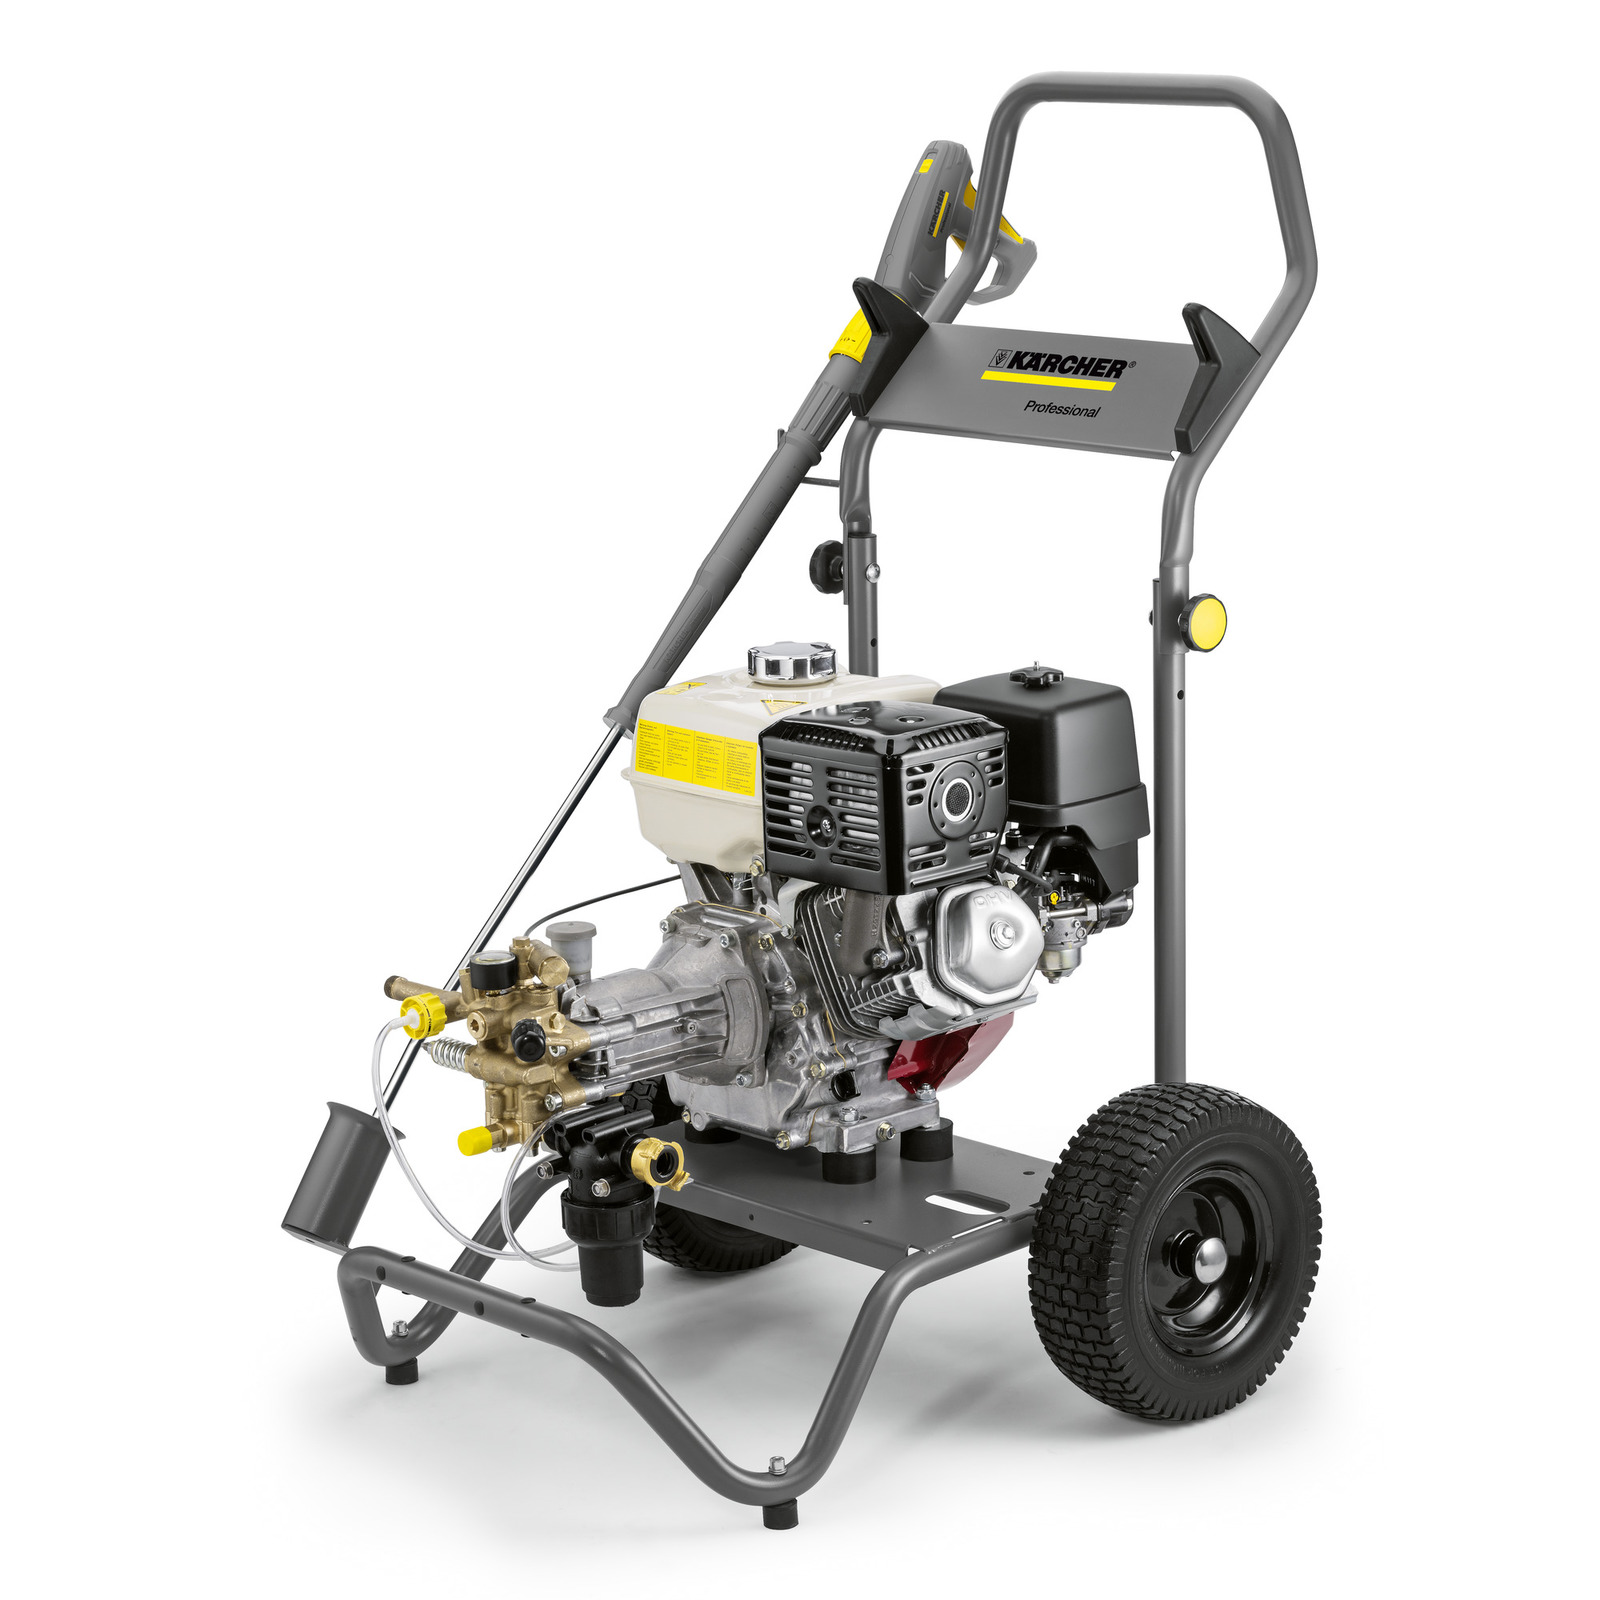 Karcher Diesel Driven High Pressure Cold Water Cleaner Hd 9/23 De